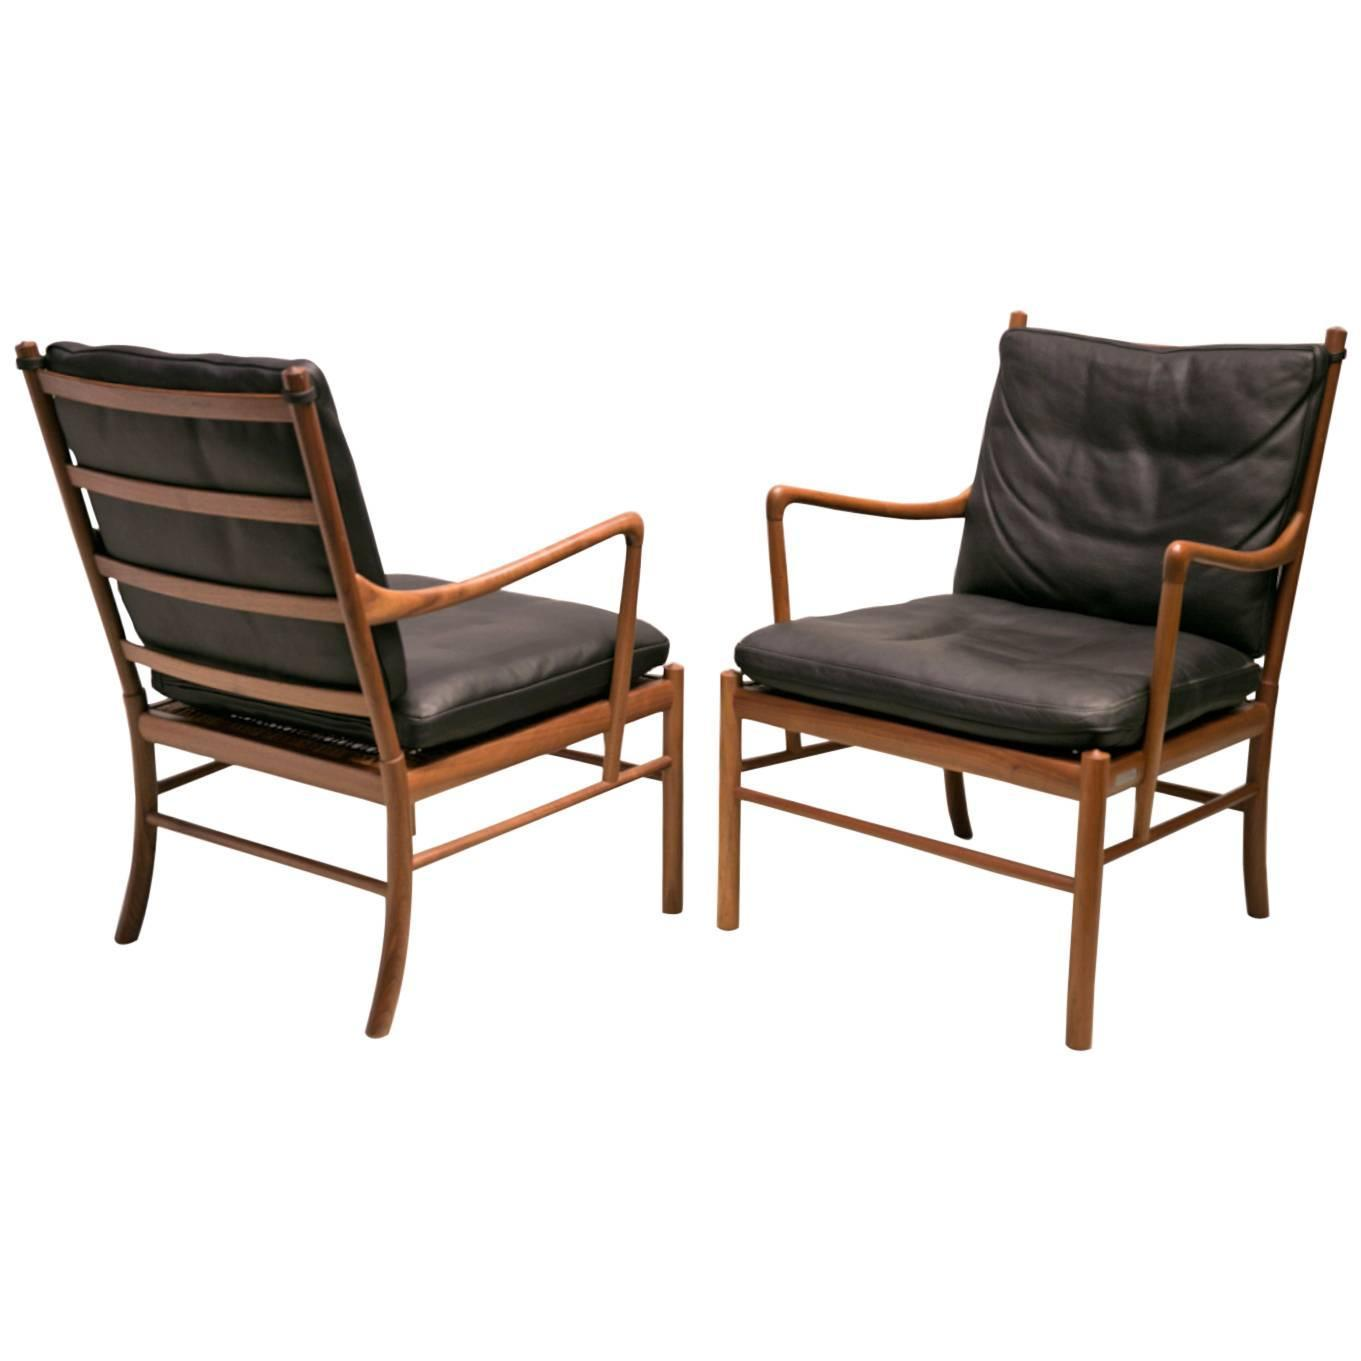 Pair Of Colonial Chairs In American Walnut By Ole Wanscher